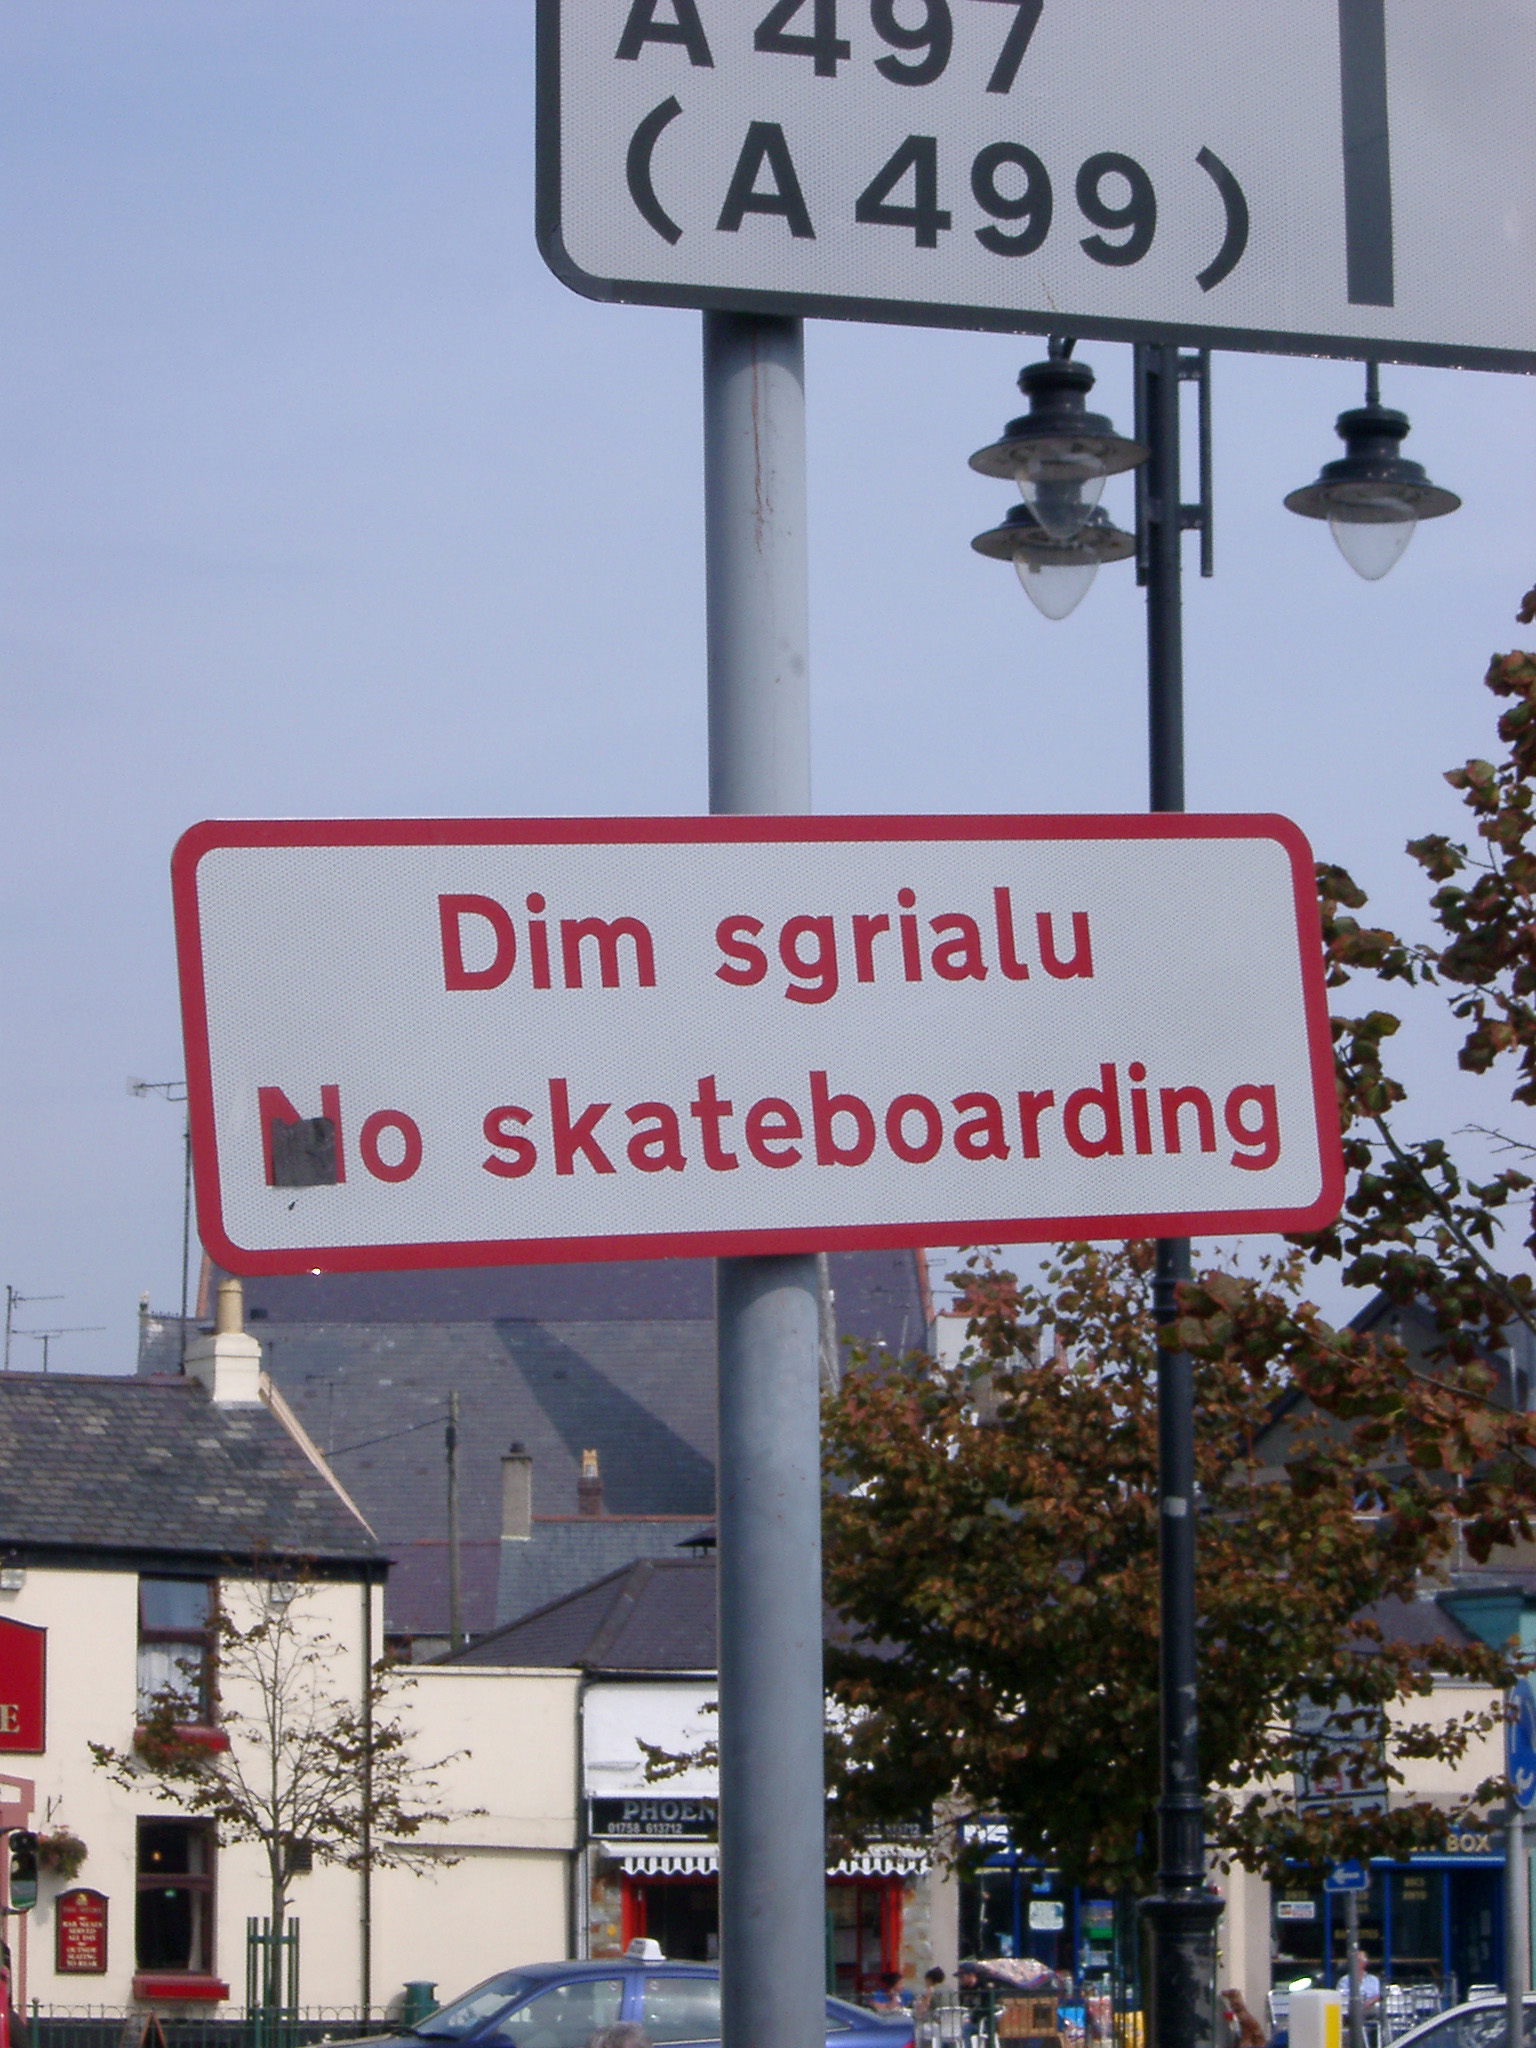 Close Up of Bi-lingual Welsh and English No Skateboarding Sign in Urban Setting